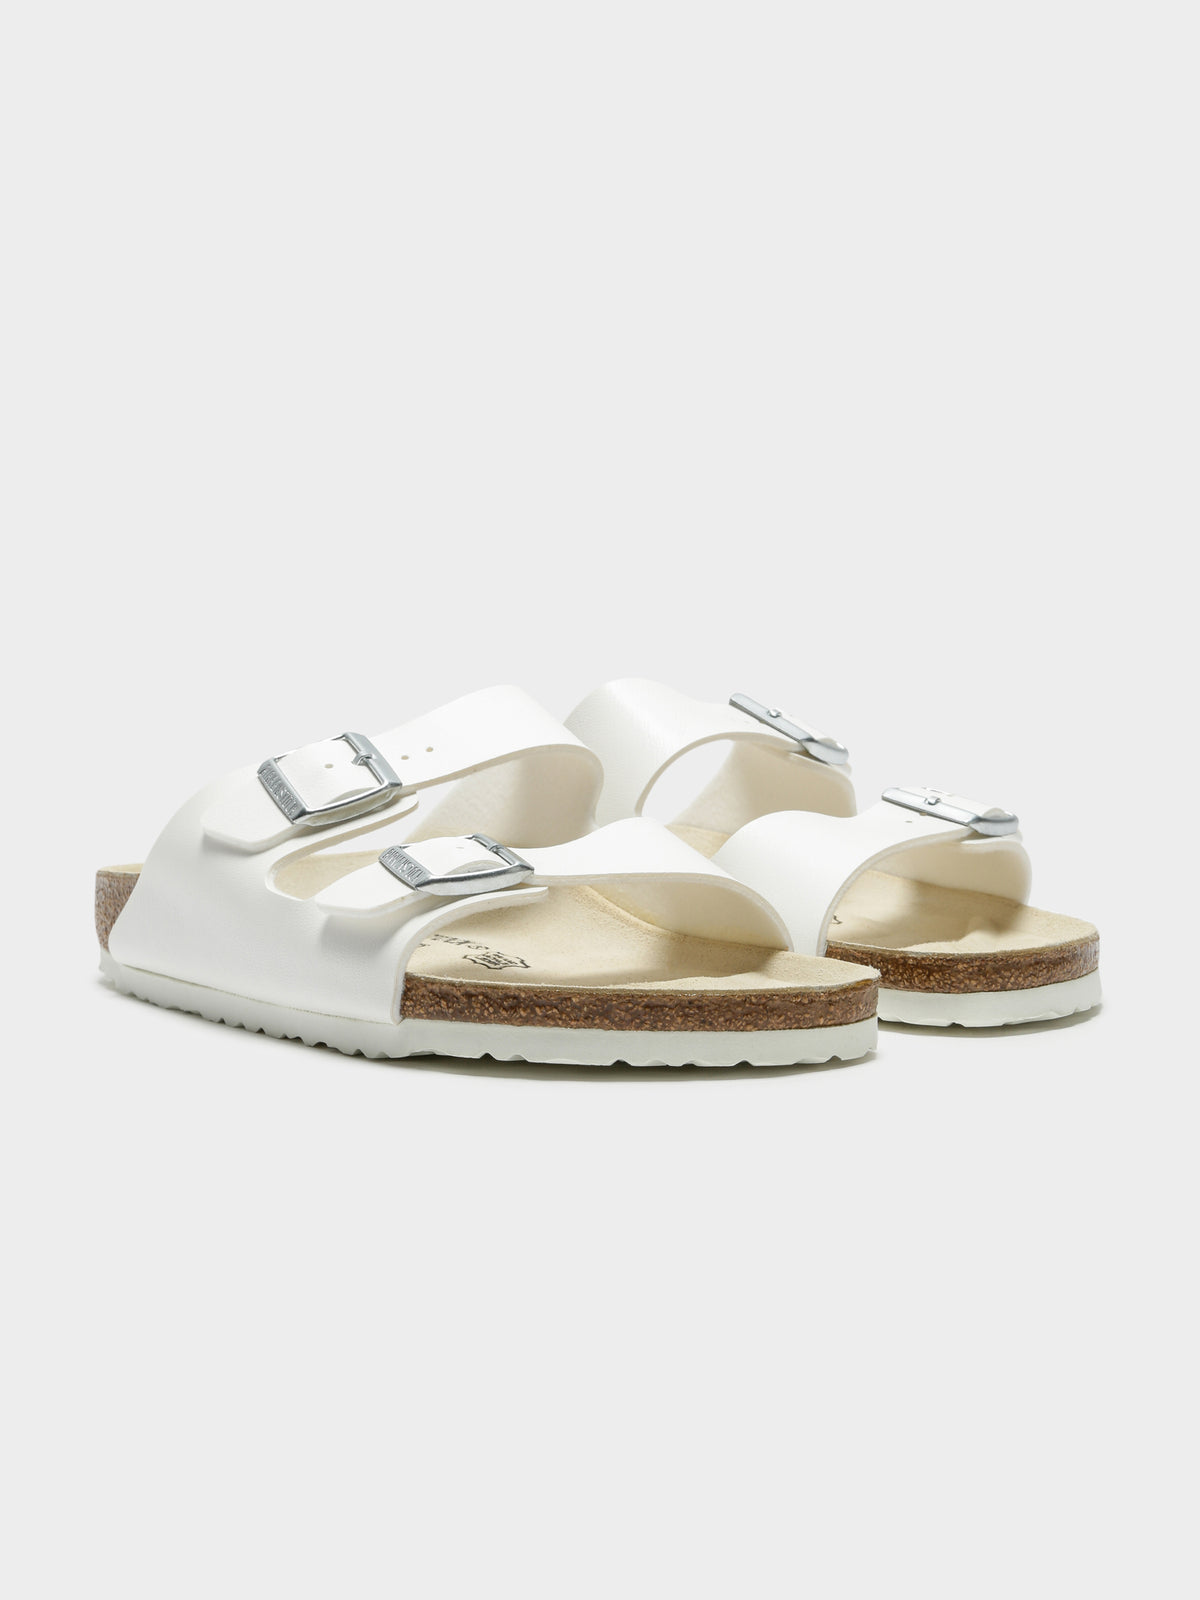 Unisex Arizona Narrow Fit Sandals in White